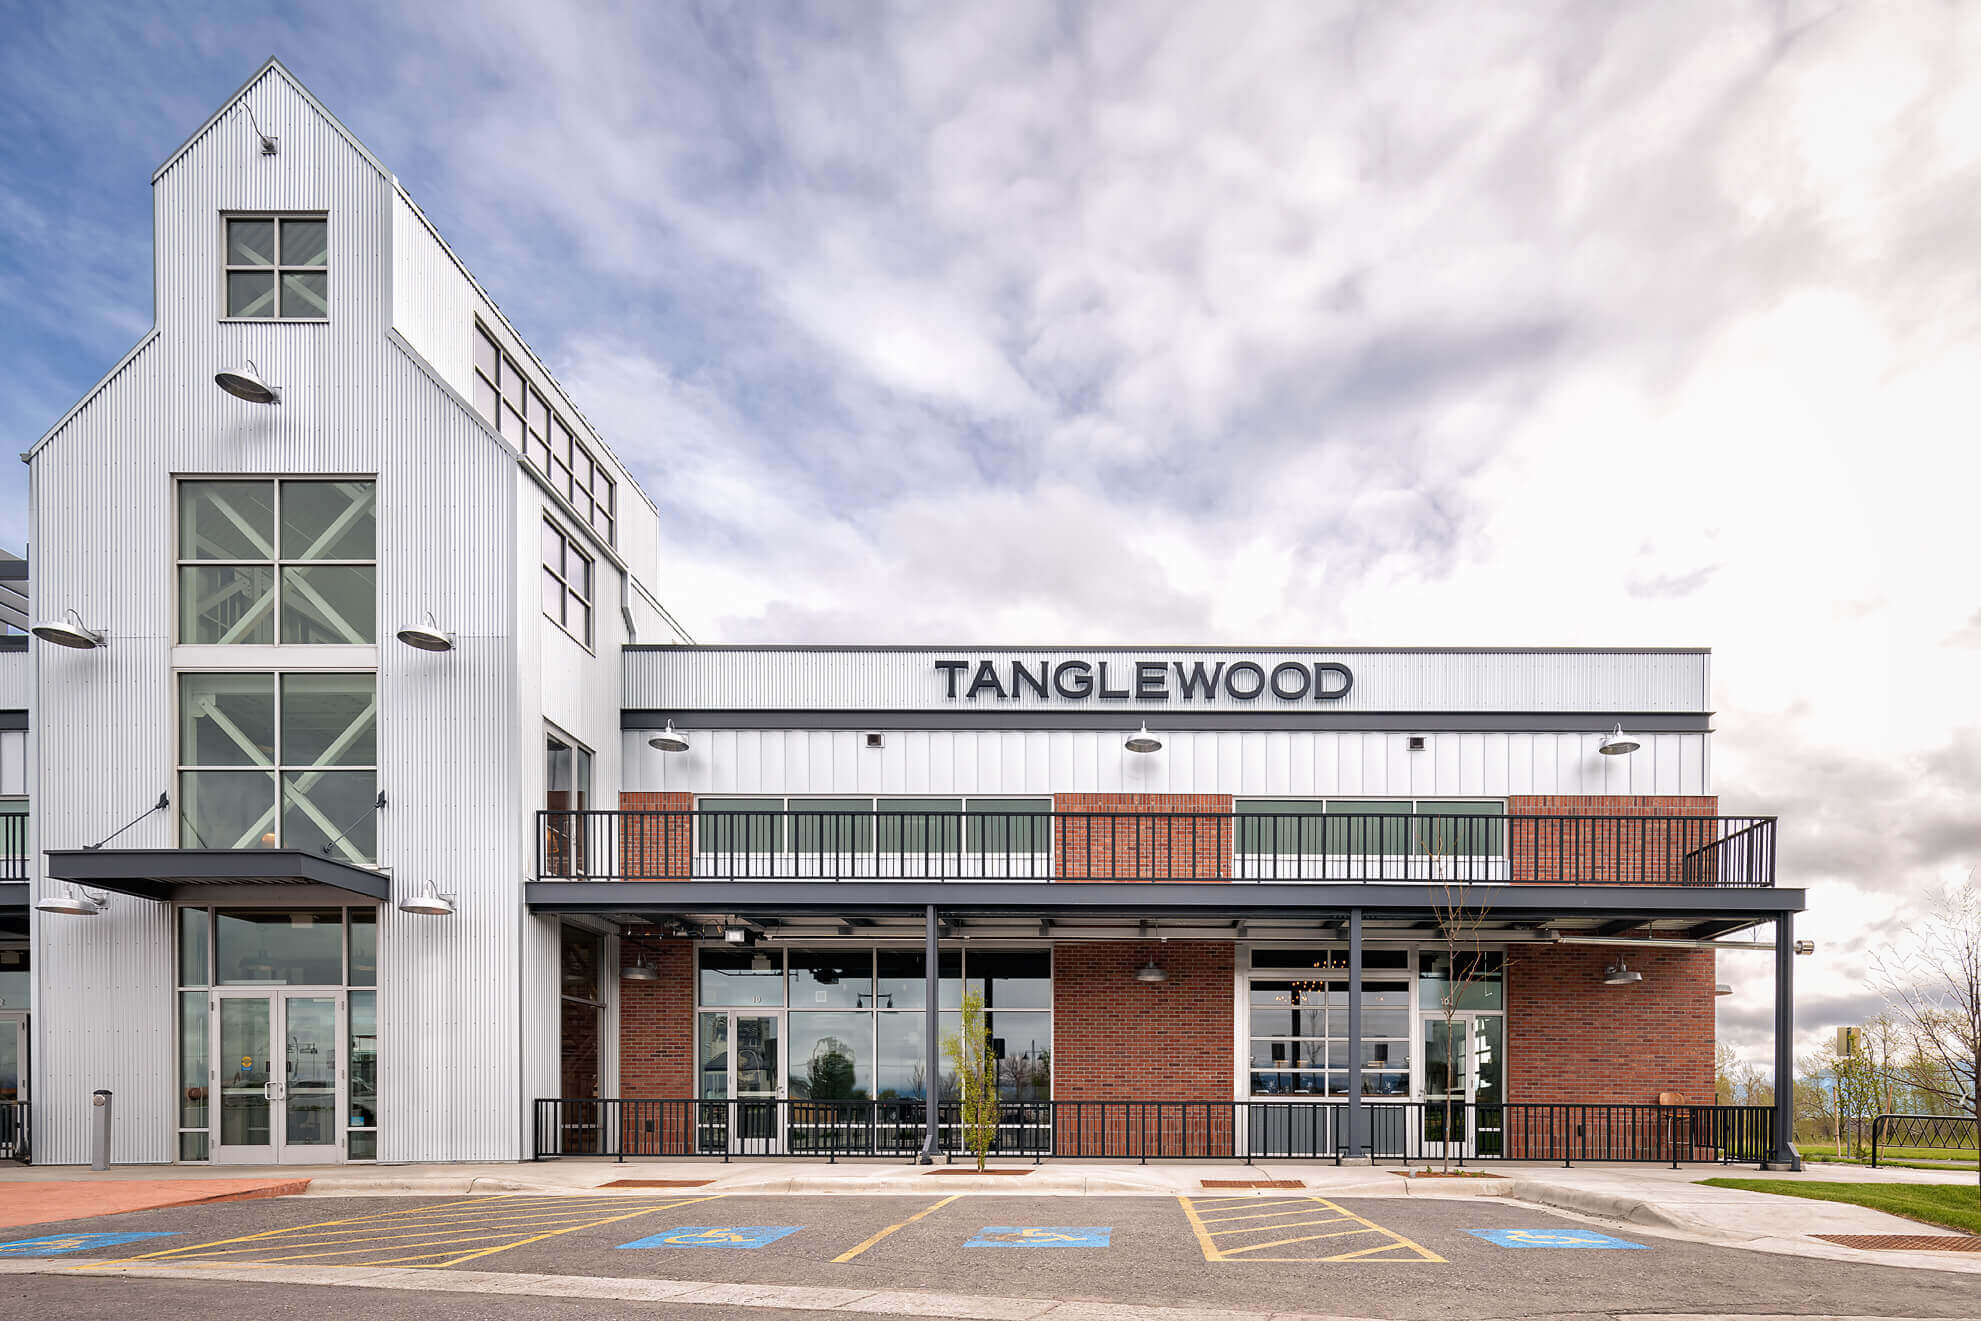 Tanglewood Grill & Tap